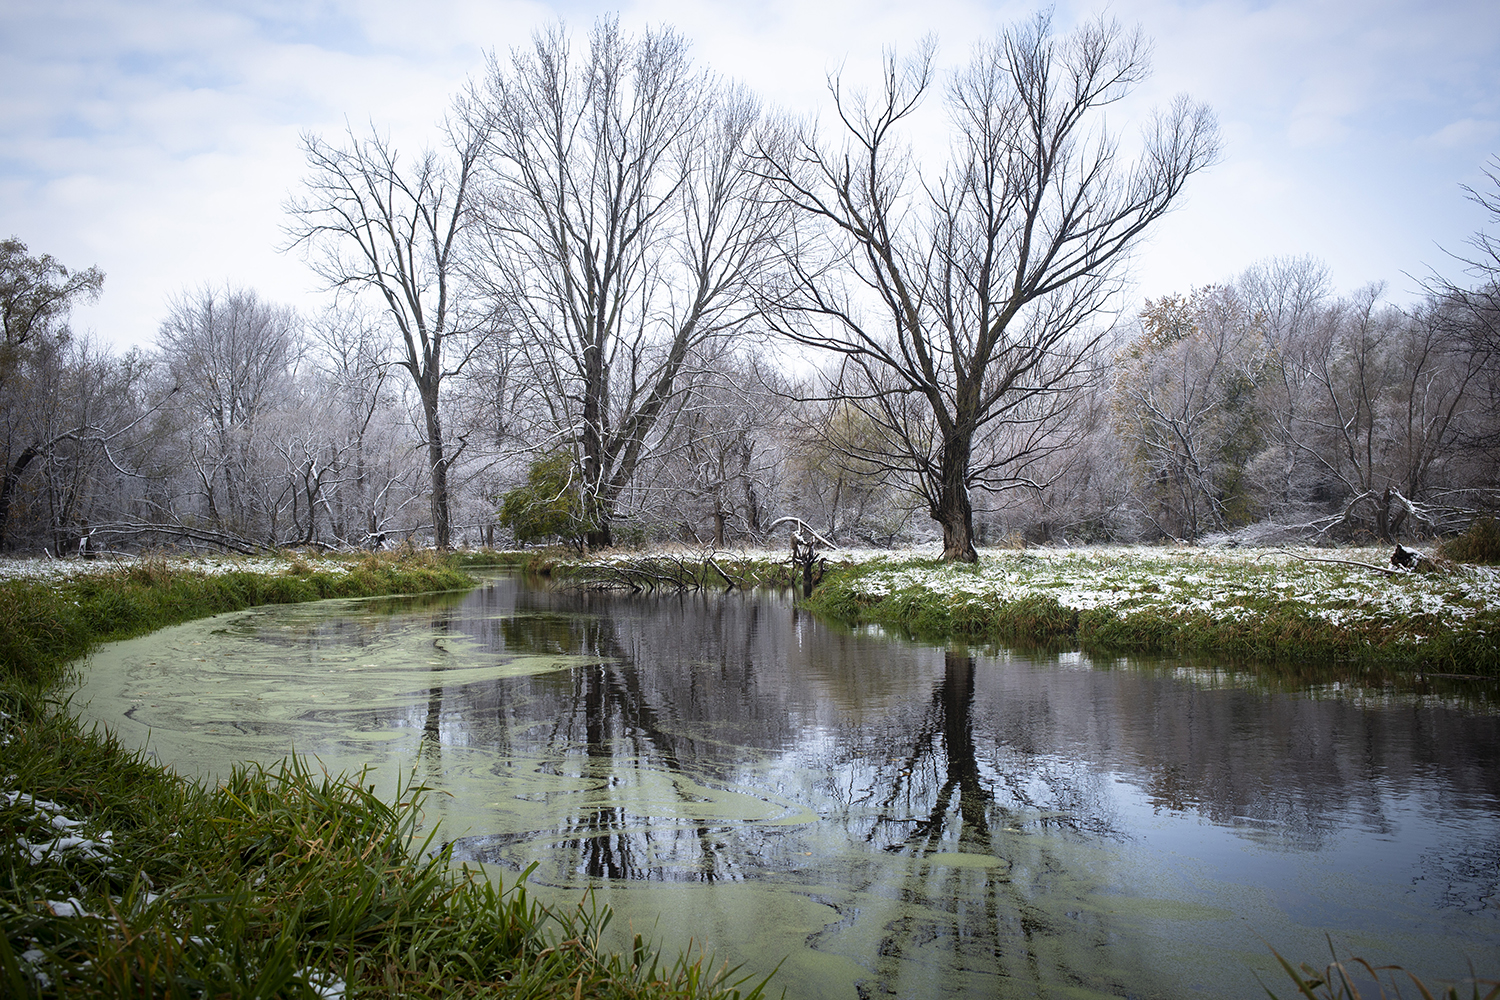 Polecat Creek near Lake Springfield flows through a snow-speckled landscape Friday, Nov. 9, 2018, in Springfield, Ill. [Rich Saal/The State Journal-Register]